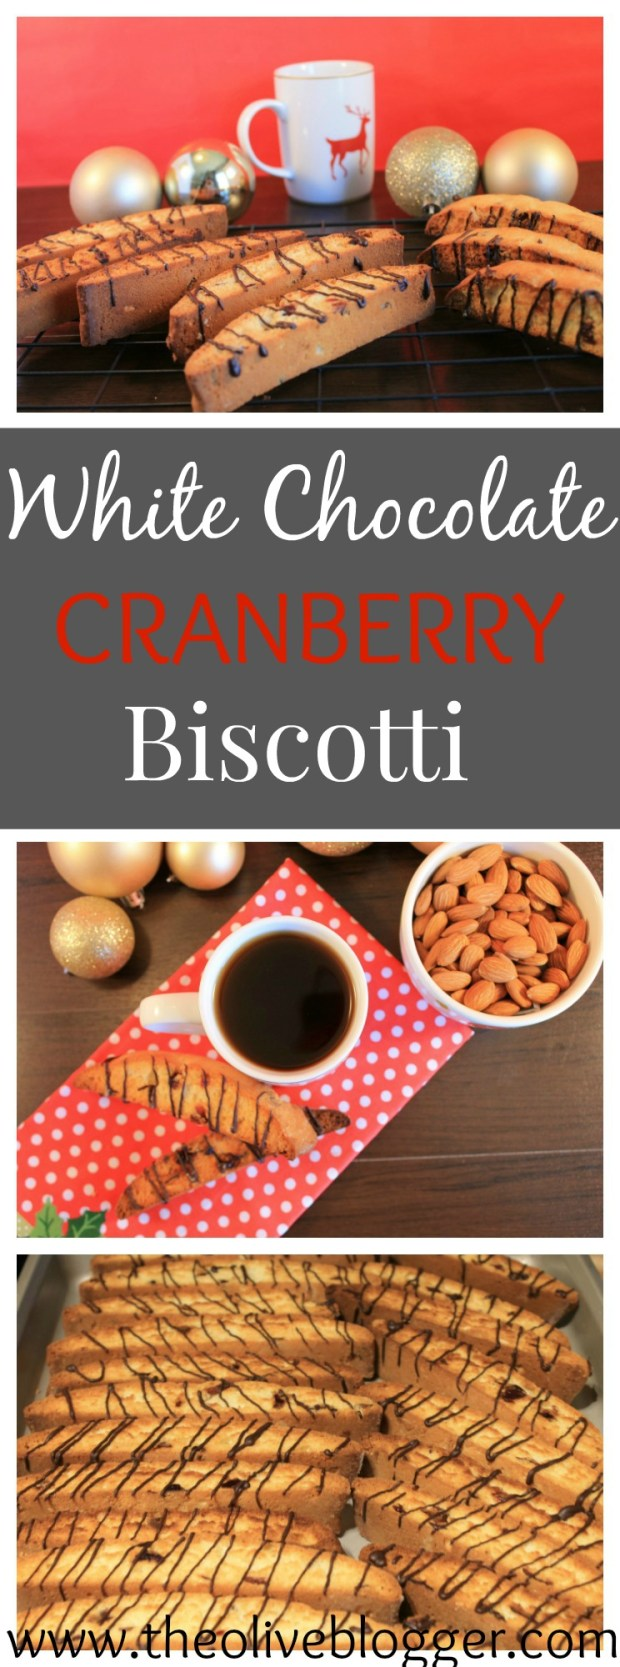 This White Chocolate Cranberry Biscotti cookie recipe is full of so much goodness! It is perfect with a cup of coffee, or as a late night snack...the flavors combine everything we love about the Holidays, and hope you enjoy too!